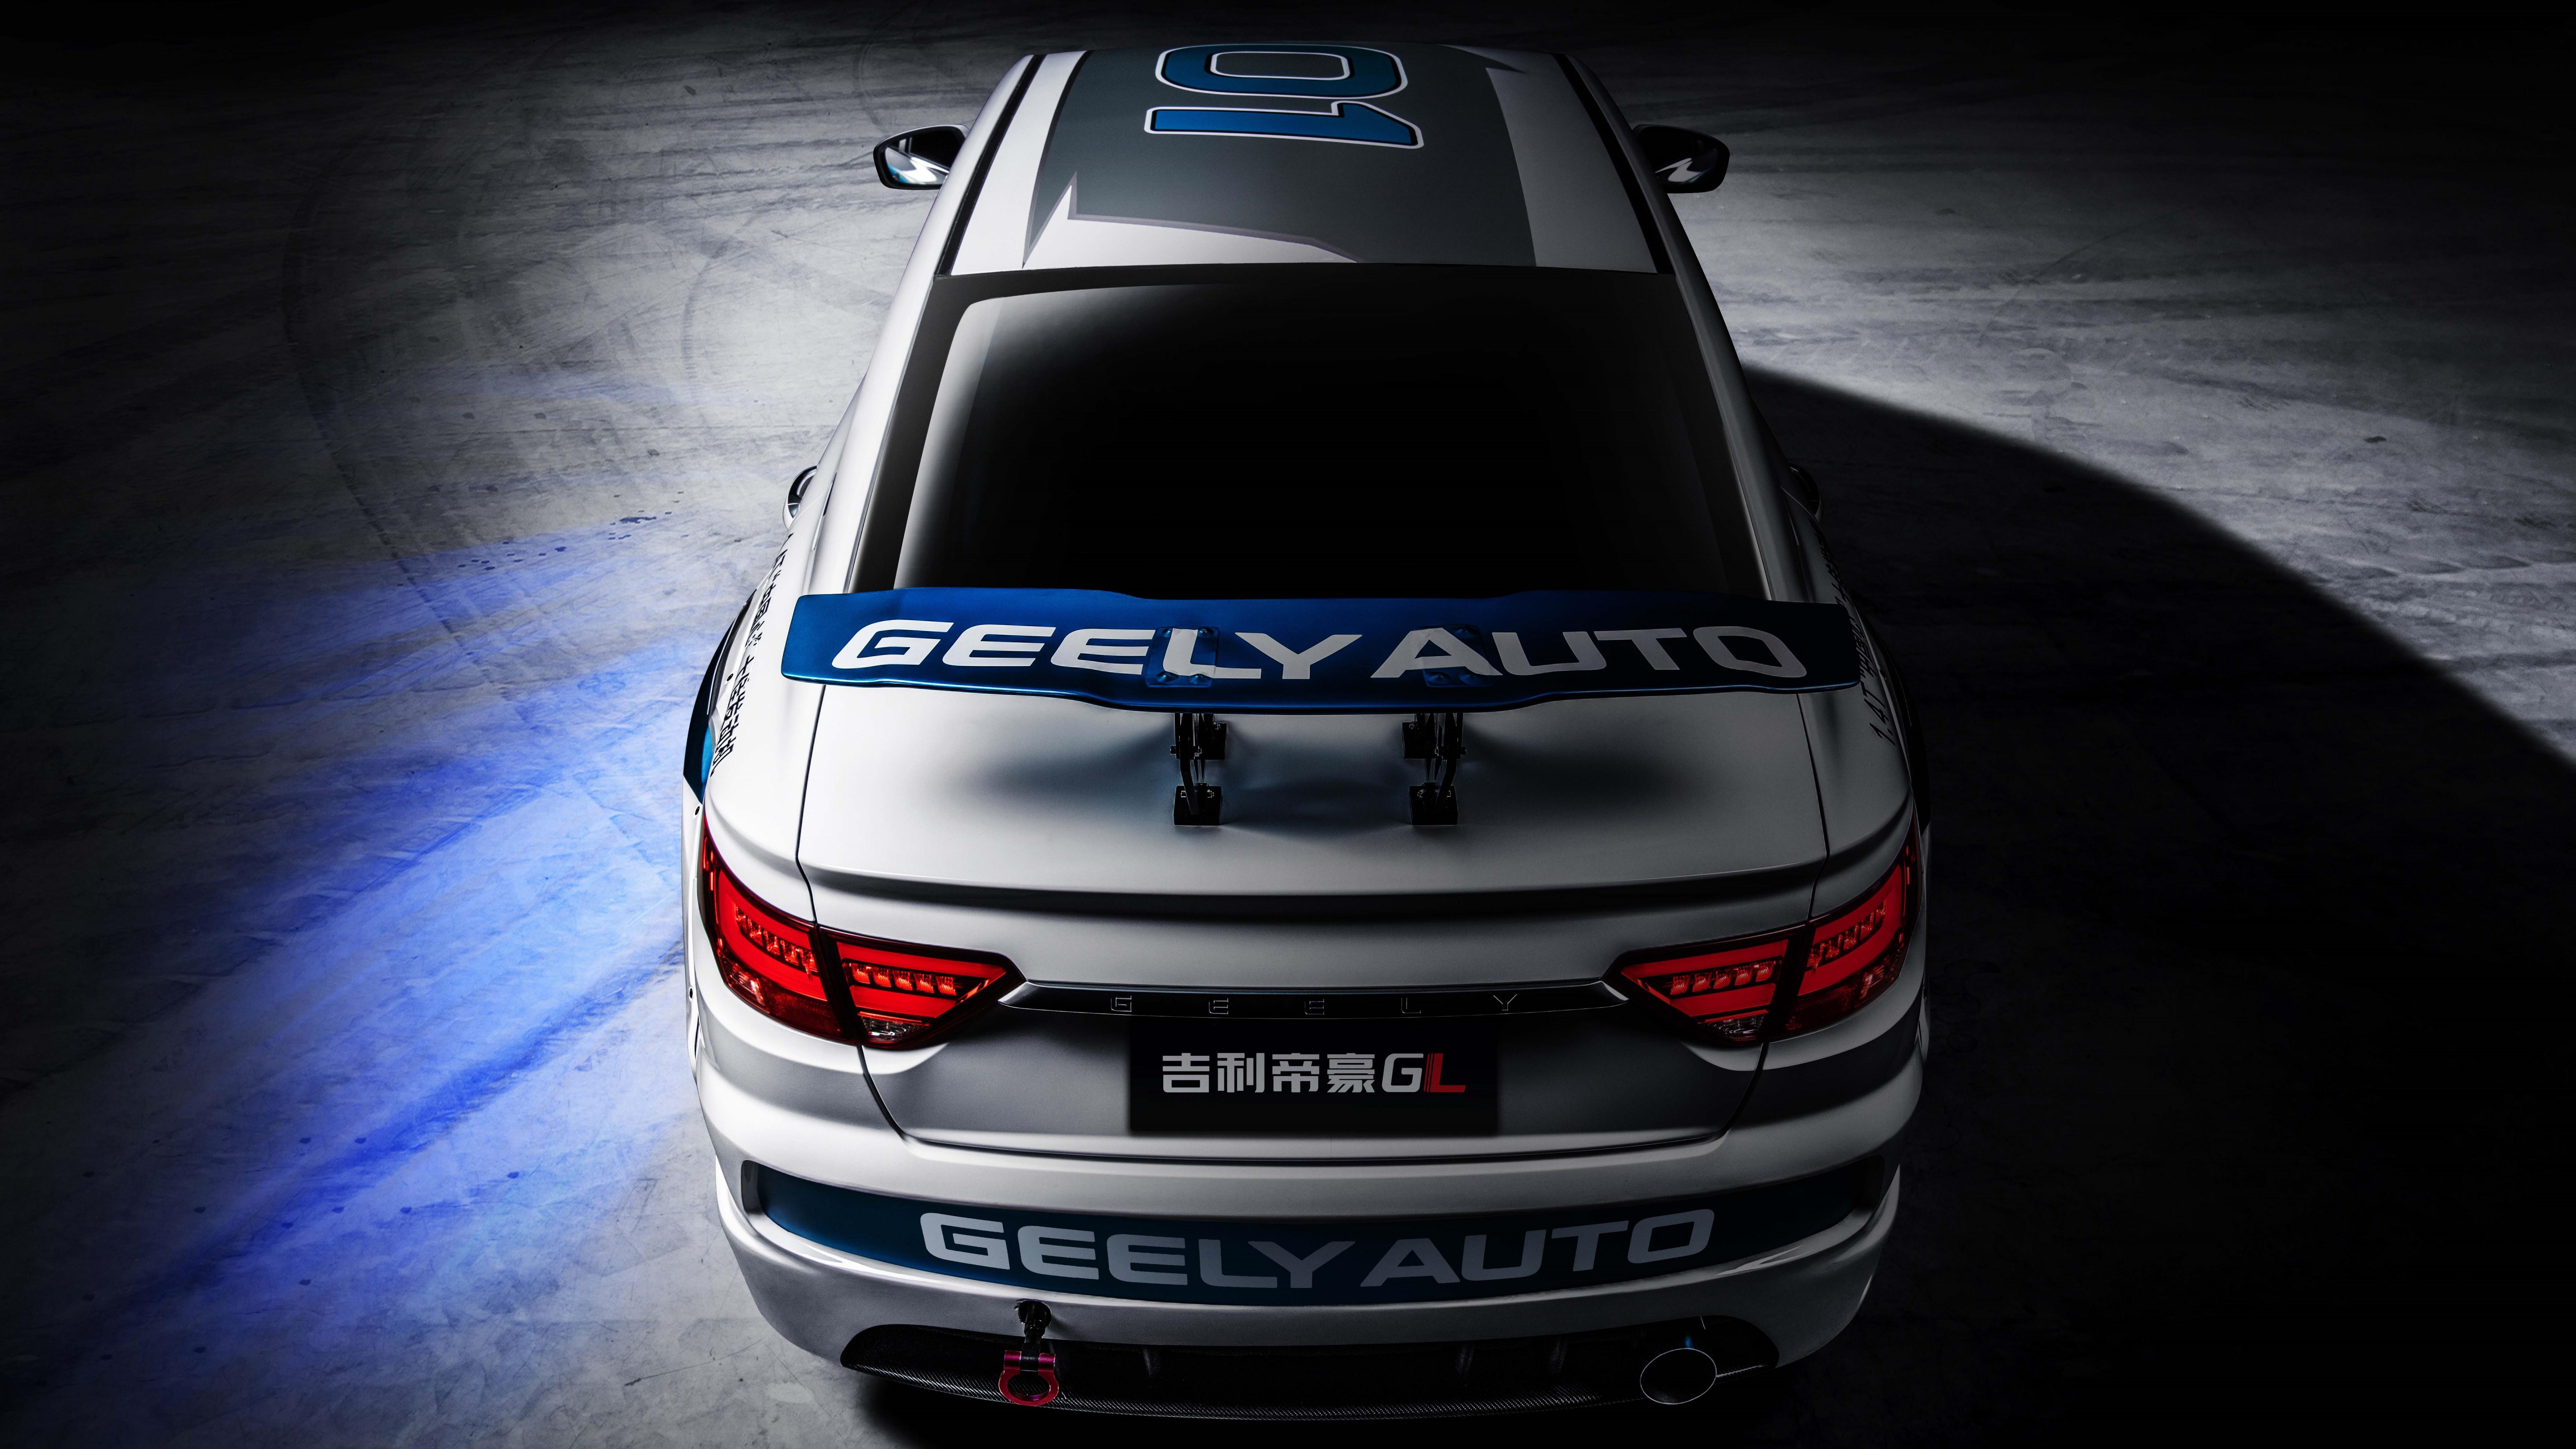 Geely Emgrand GL Rear View 8K UltraHD Wallpapers